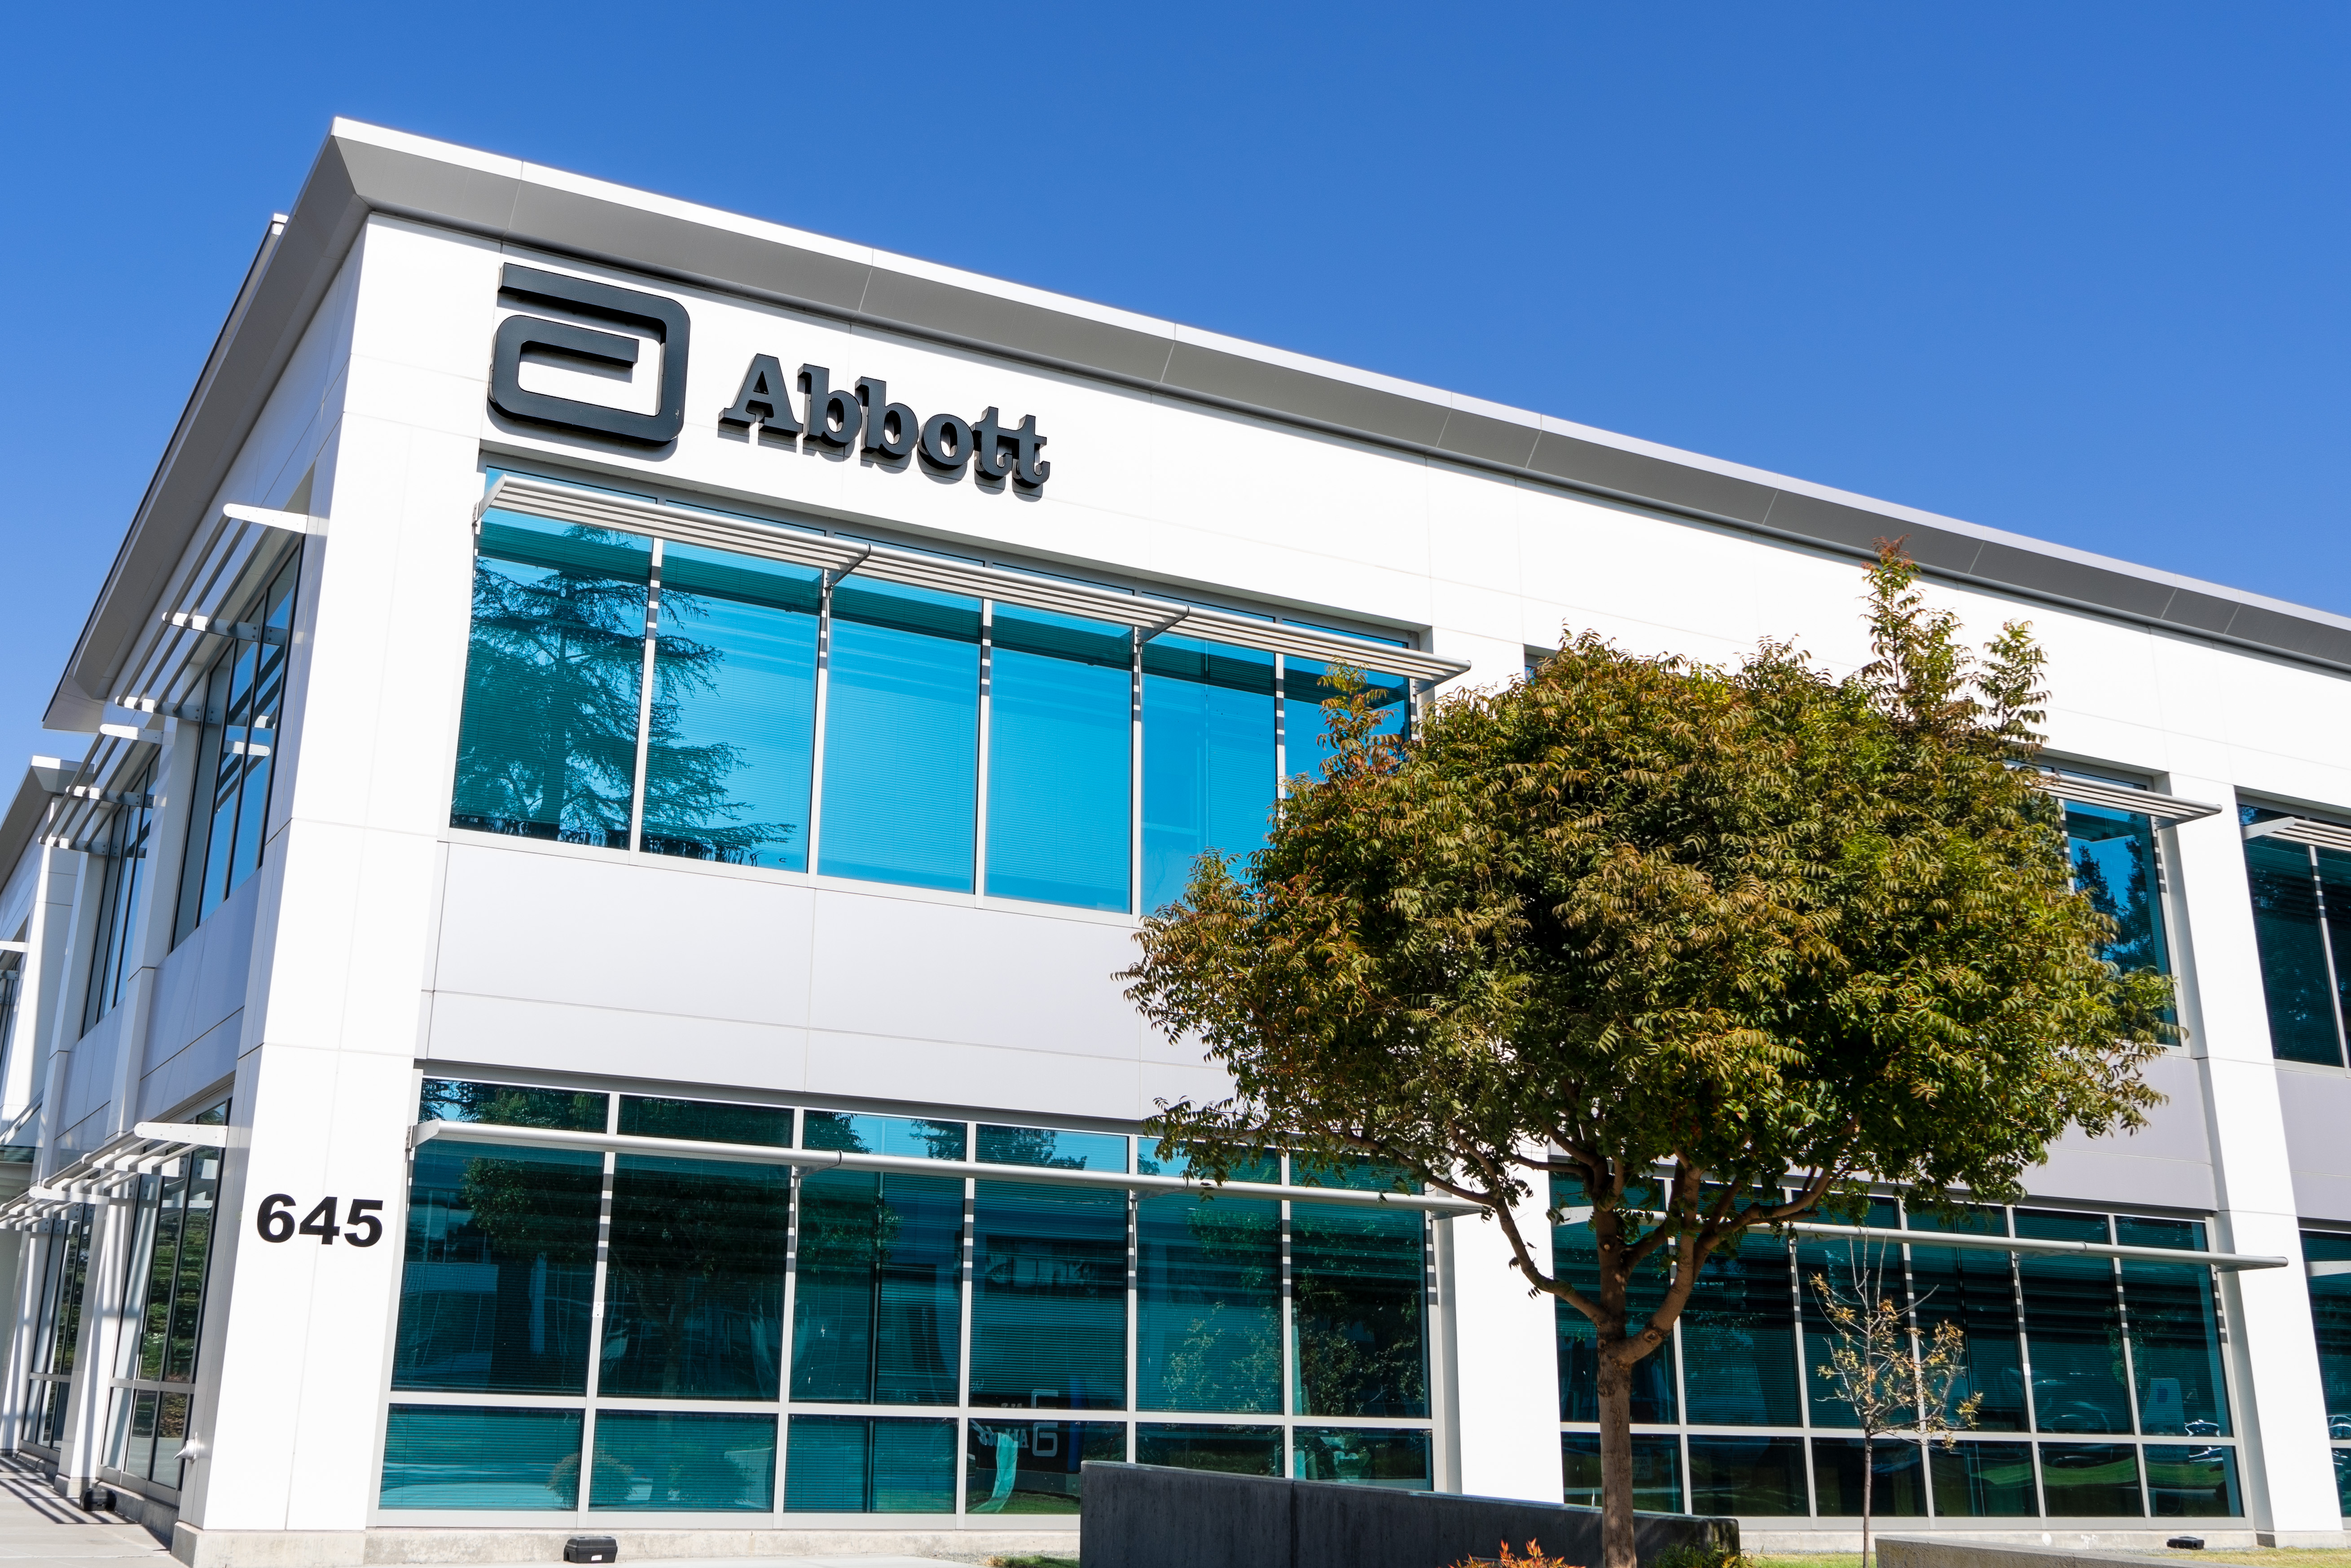 Oct 15, 2019 Sunnyvale / CA / USA - Abbott Laboratories headquarters in Silicon Valley; Abbott Laboratories is an American medical devices and health care company